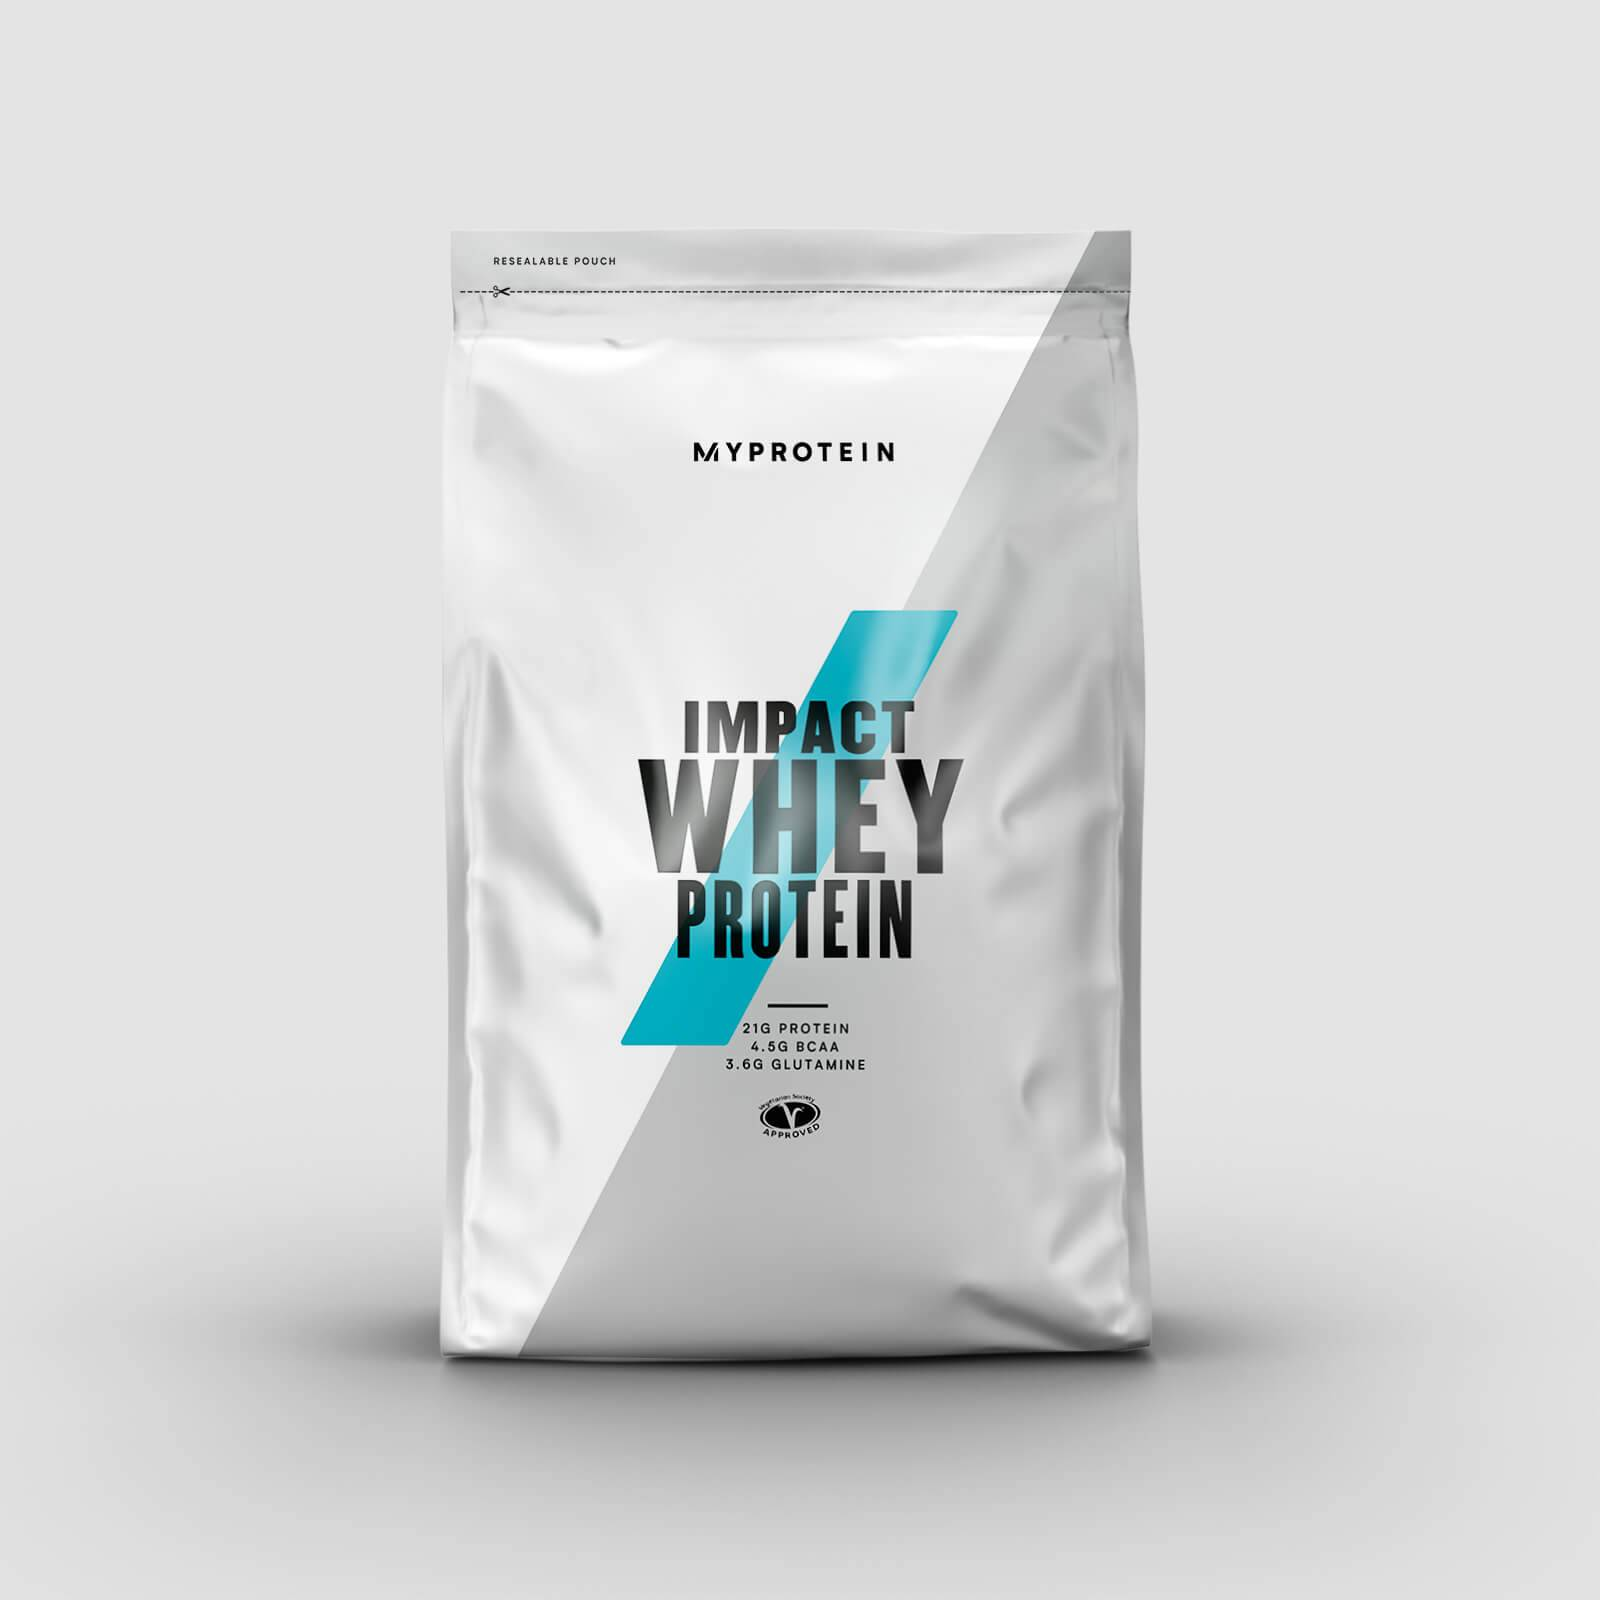 Myprotein Impact Whey Protein - 1kg - Sirop d'érable